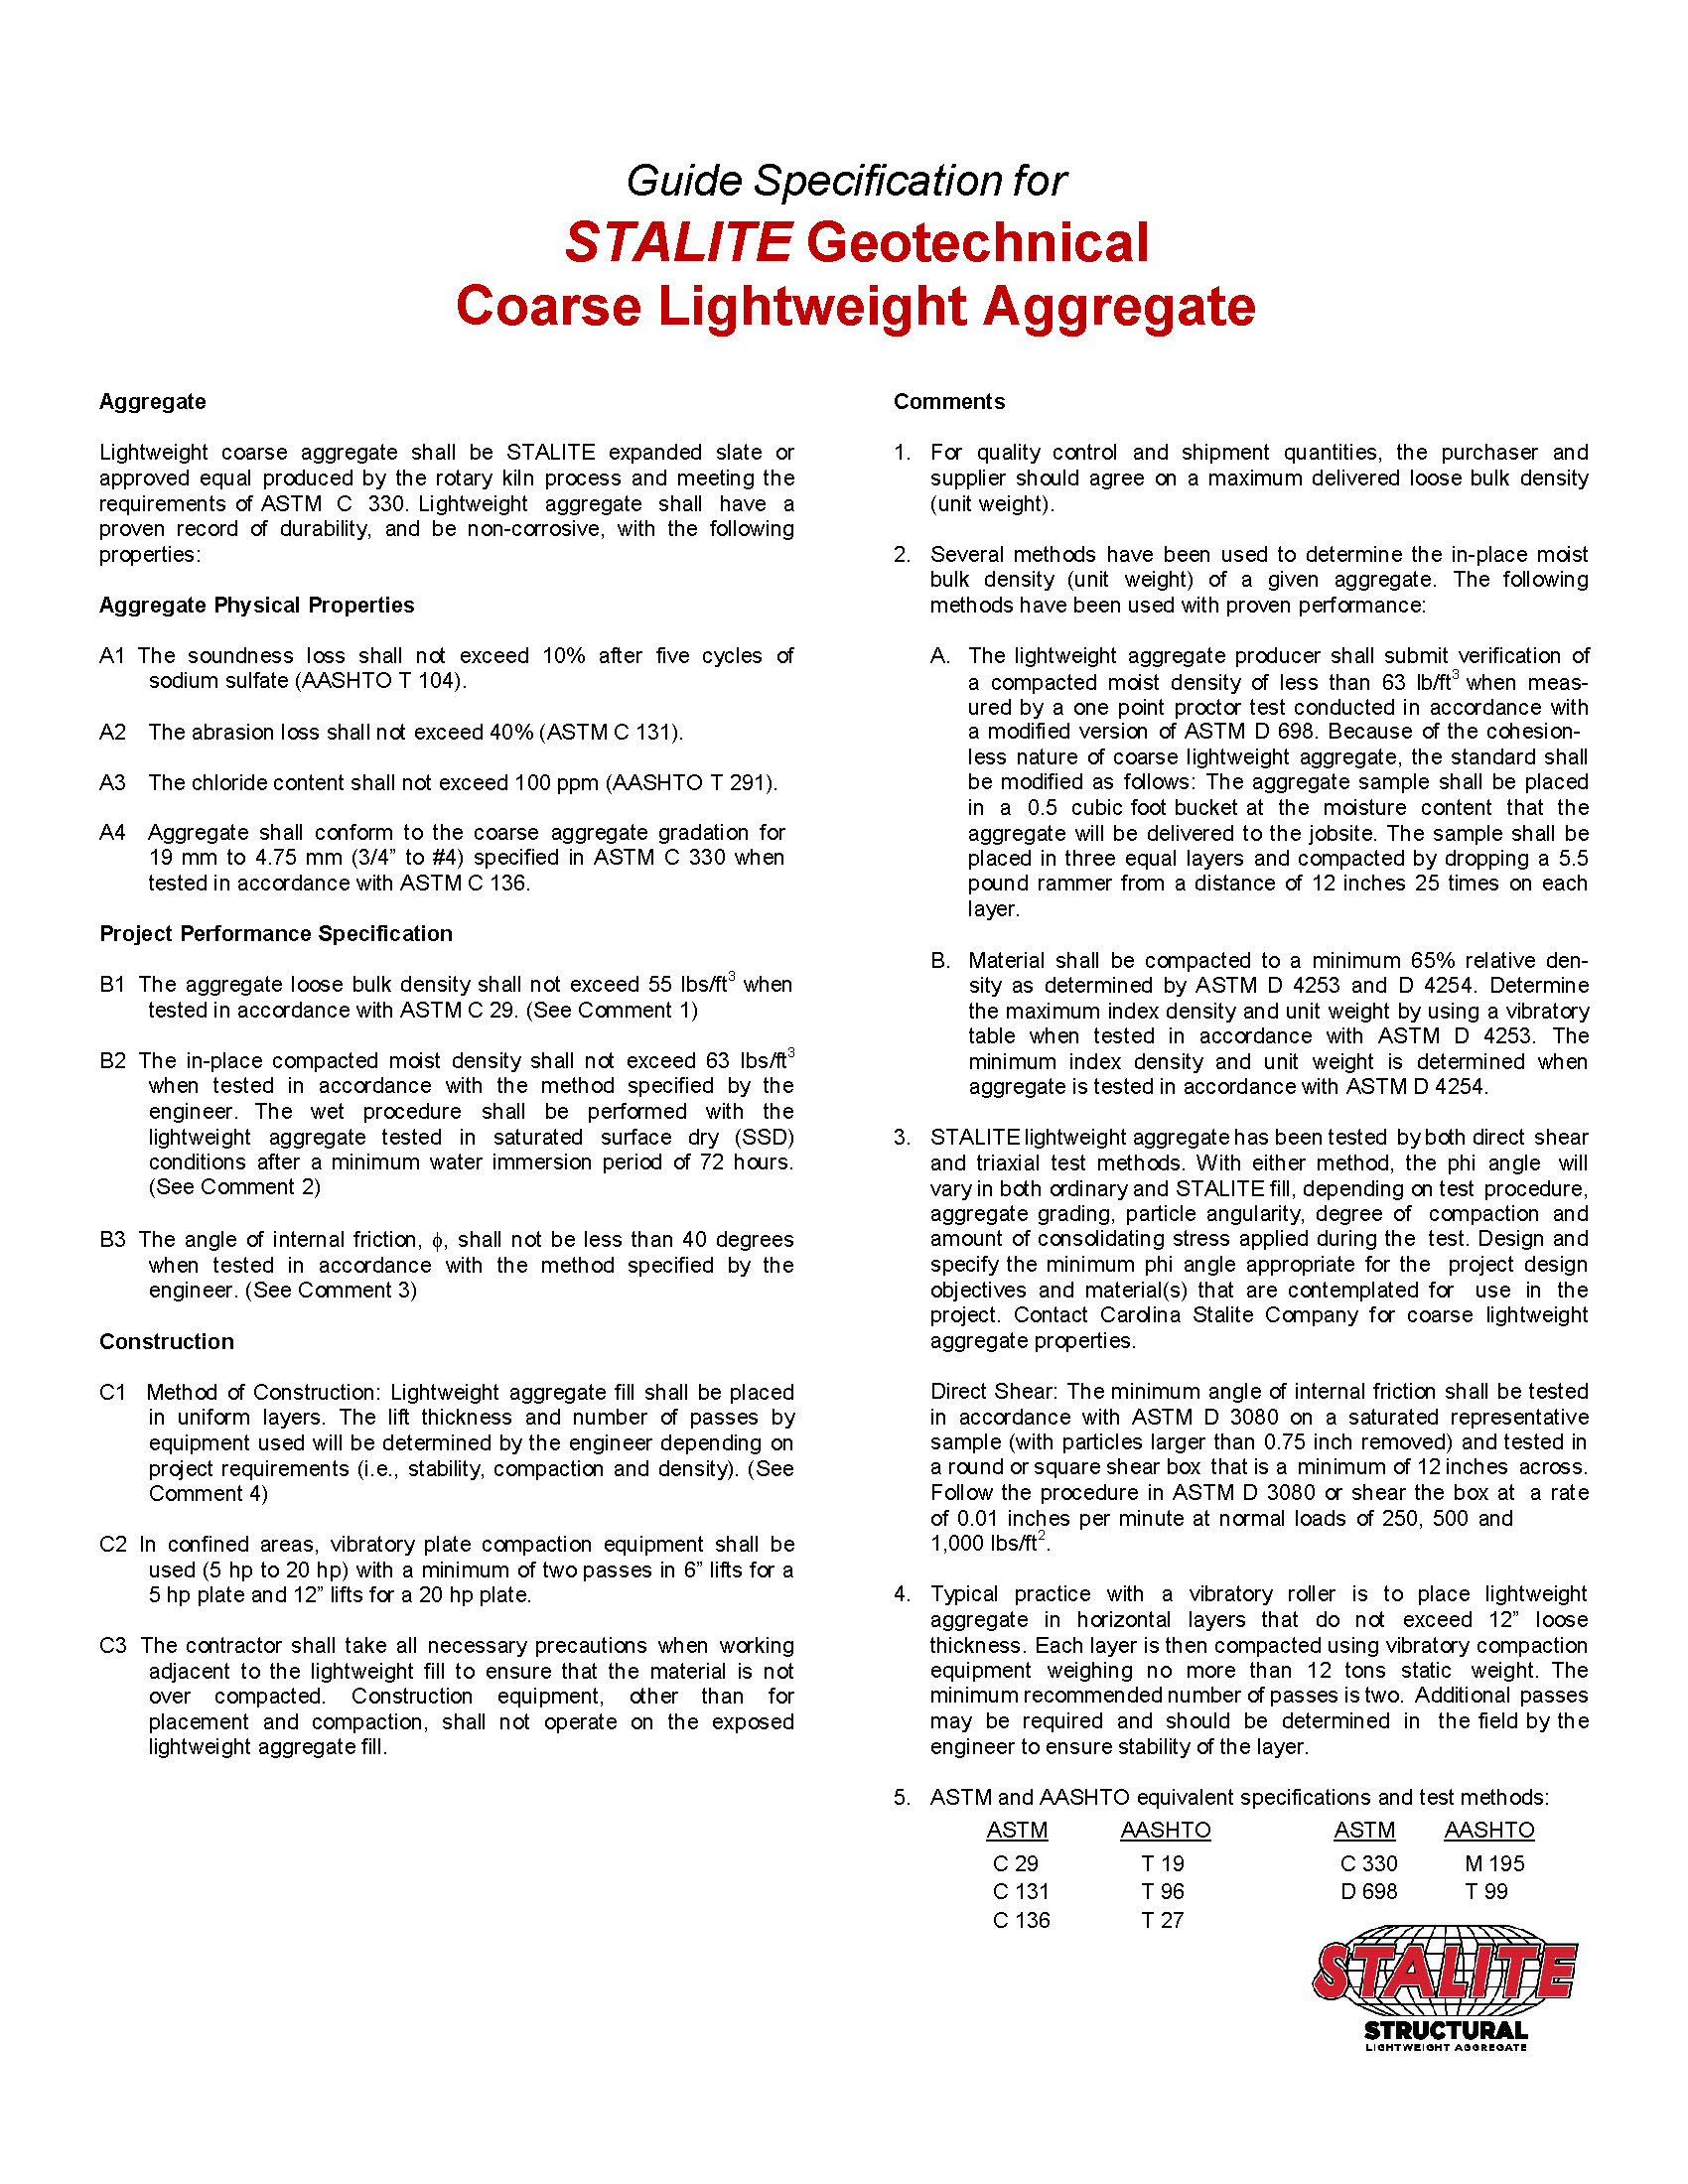 GEO Guide Specifications for LW-Coarse-072718++.jpg